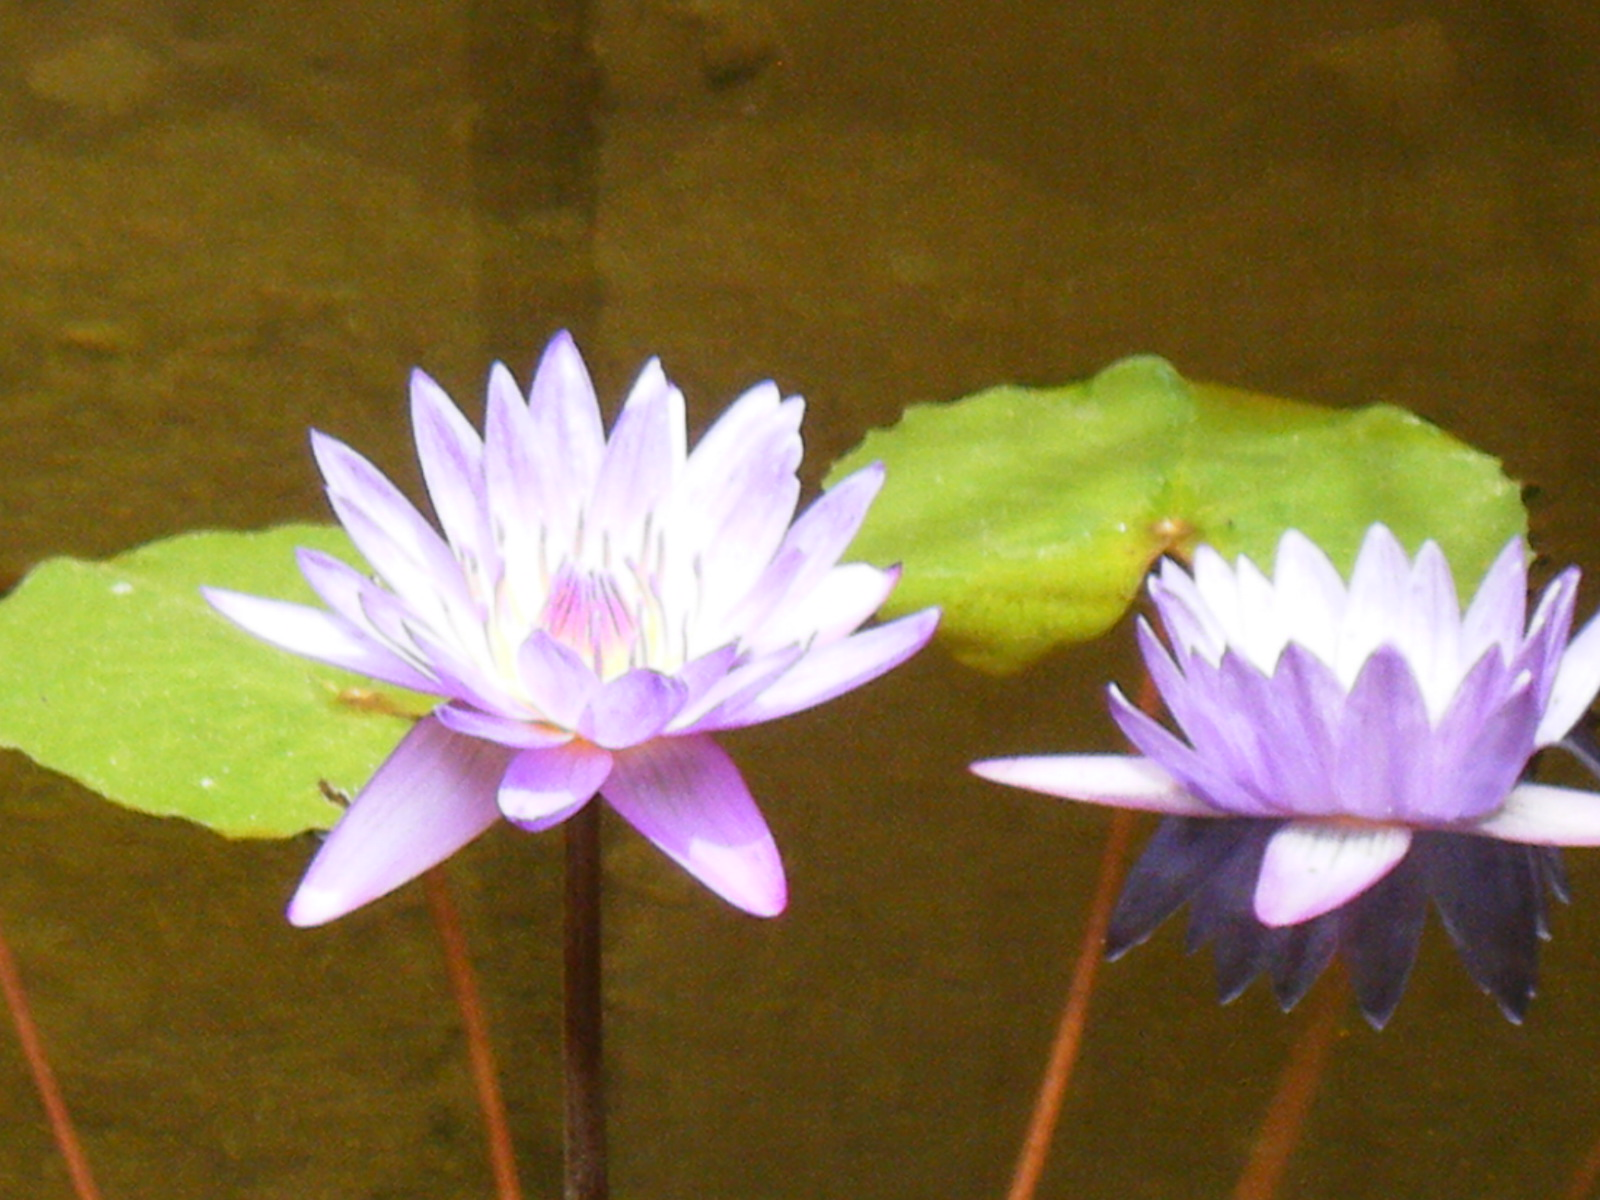 Jewel box more lotus flower love kind of got excited thinking about lotus flowers the other day and found these old photos i took in mexico of some purple lotus izmirmasajfo Choice Image